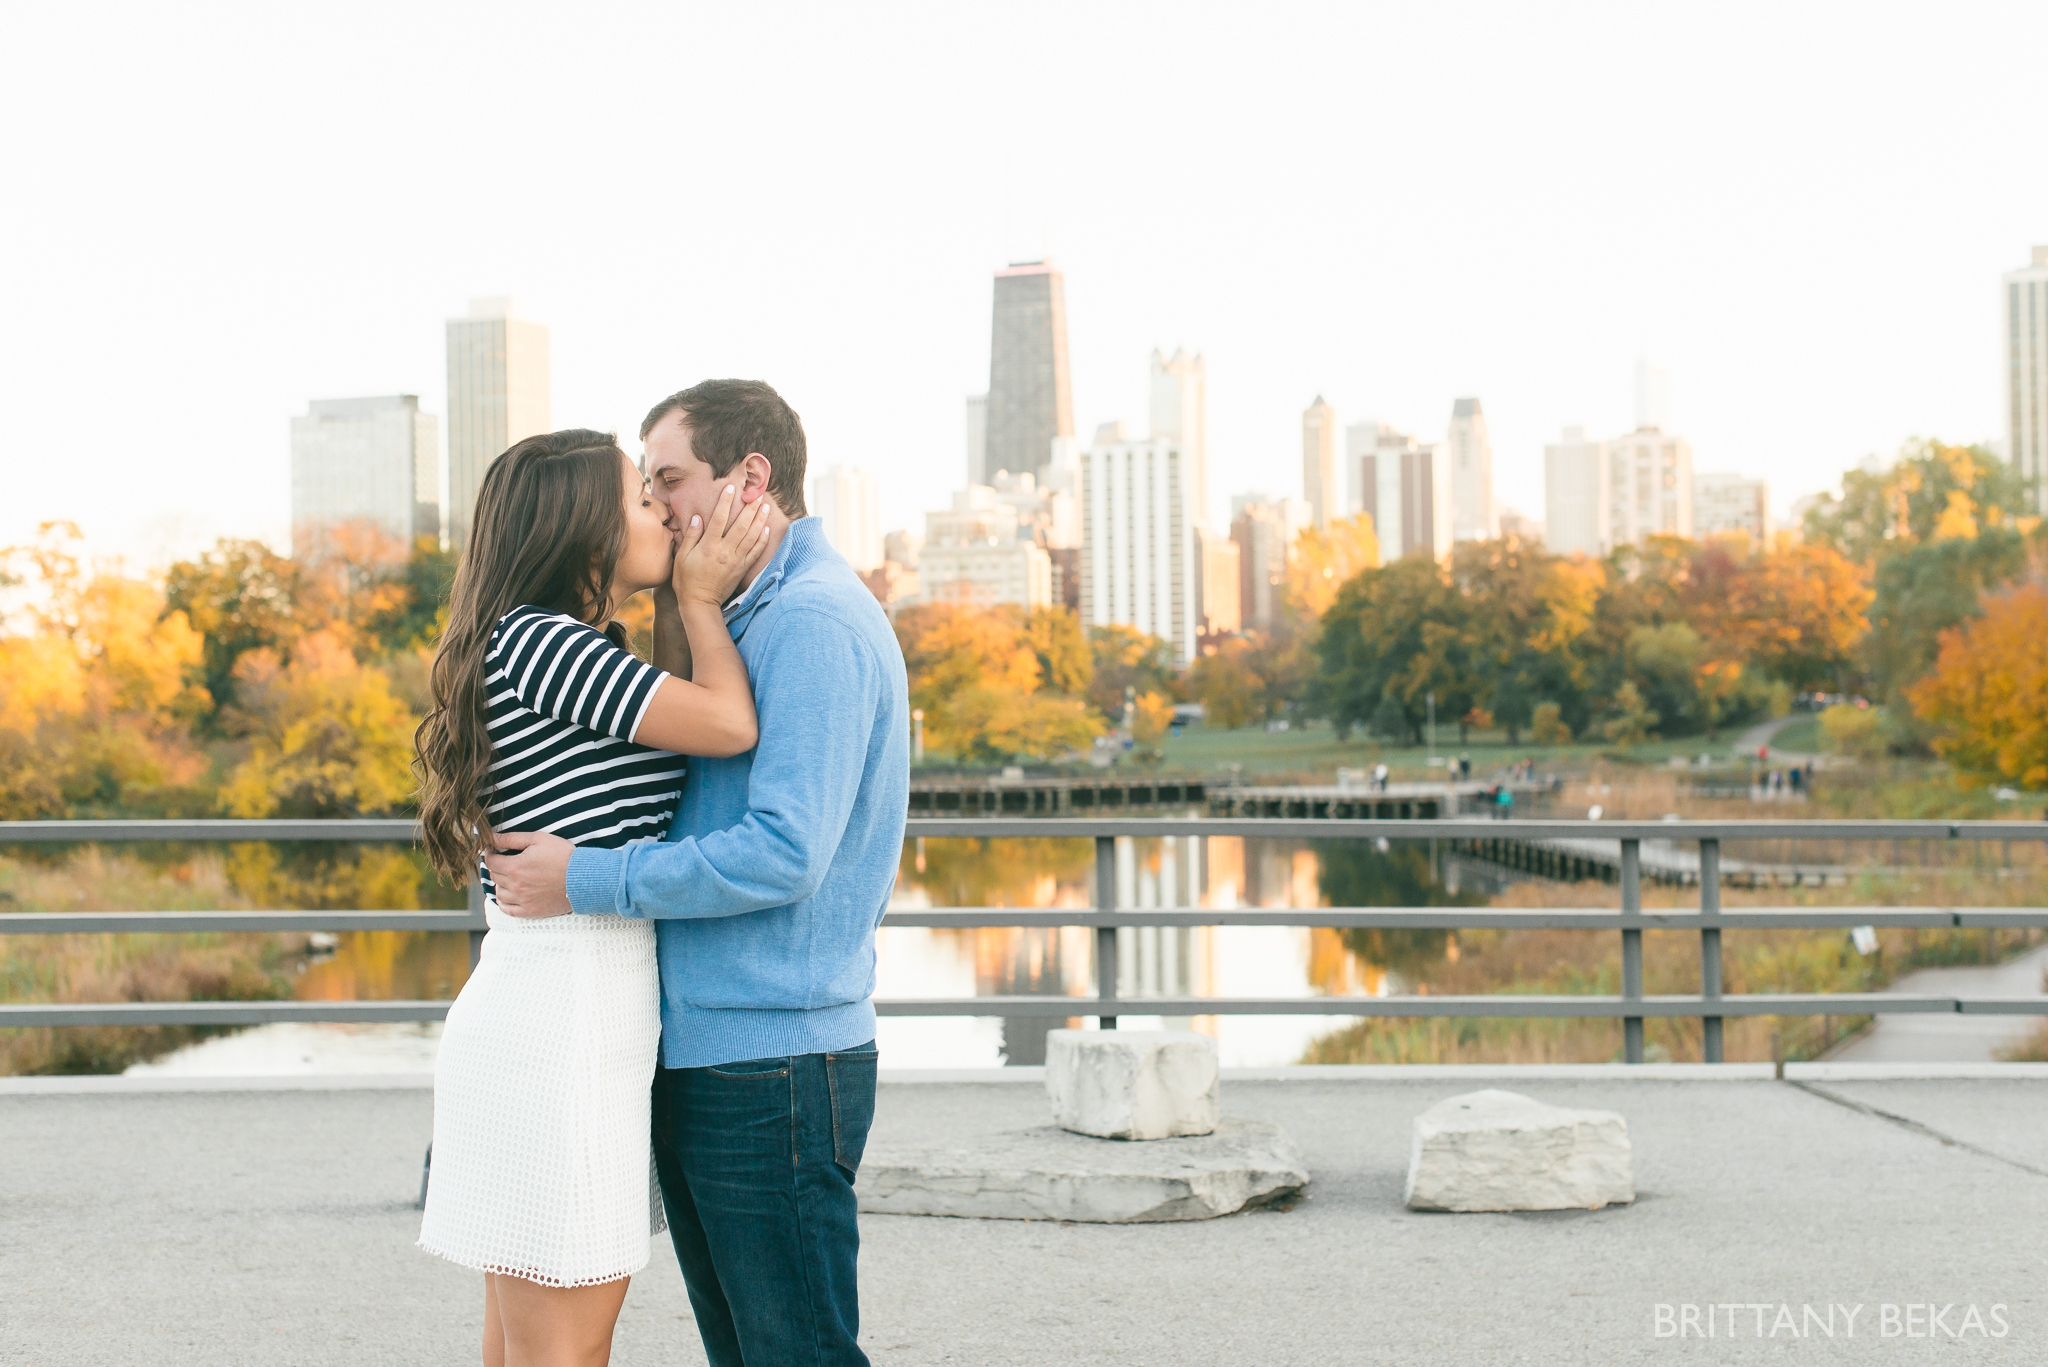 Chicago Engagement Lincoln Park Engagement Photos - Brittany Bekas Photography_0032